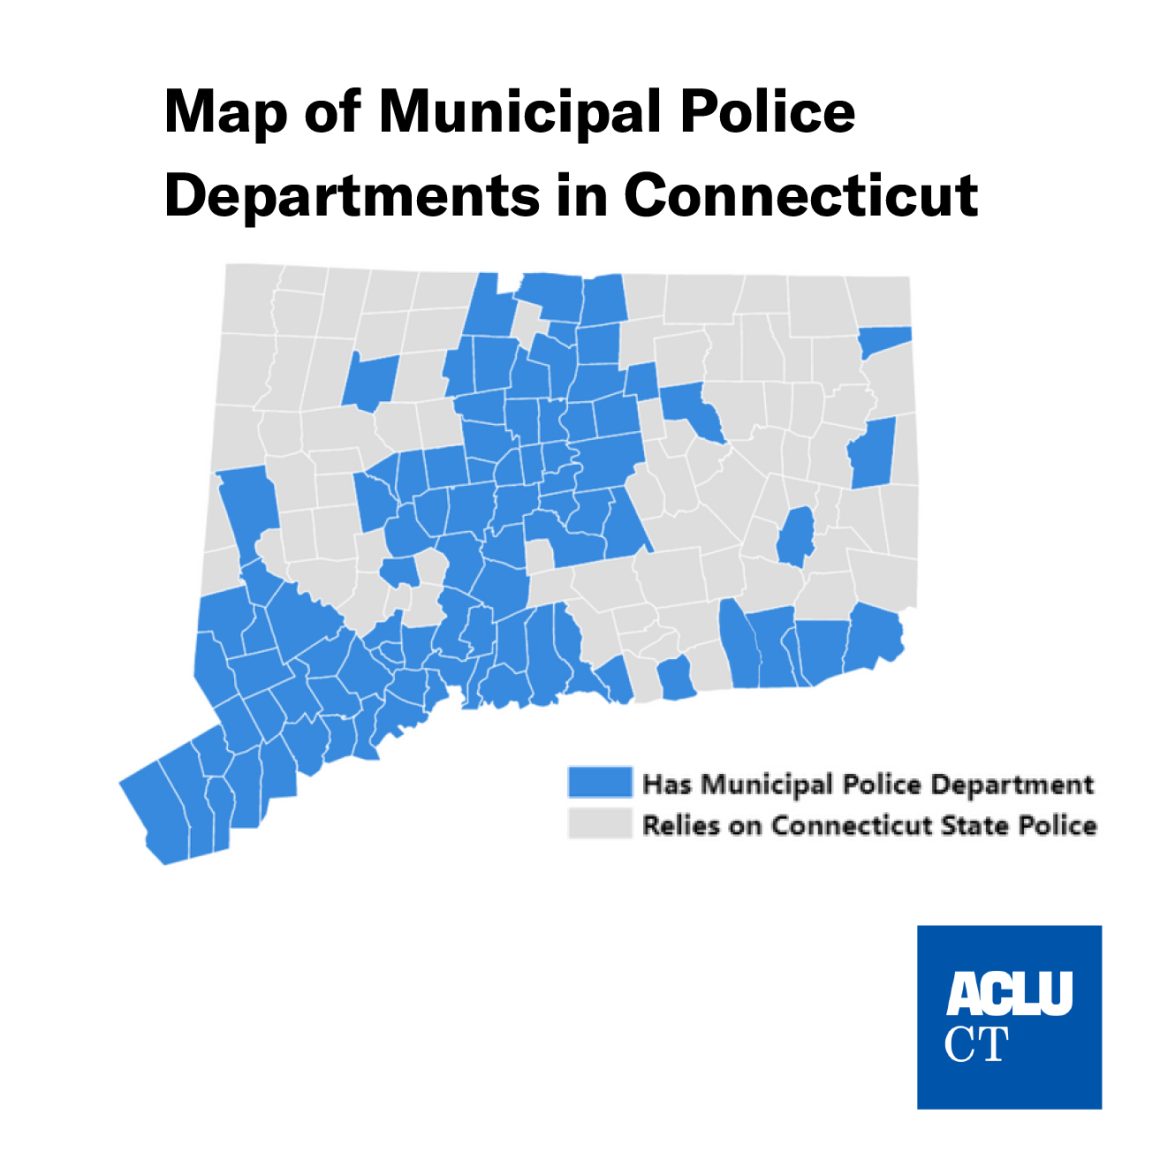 Map of Connecticut by town with municipal police vs reliant on state police